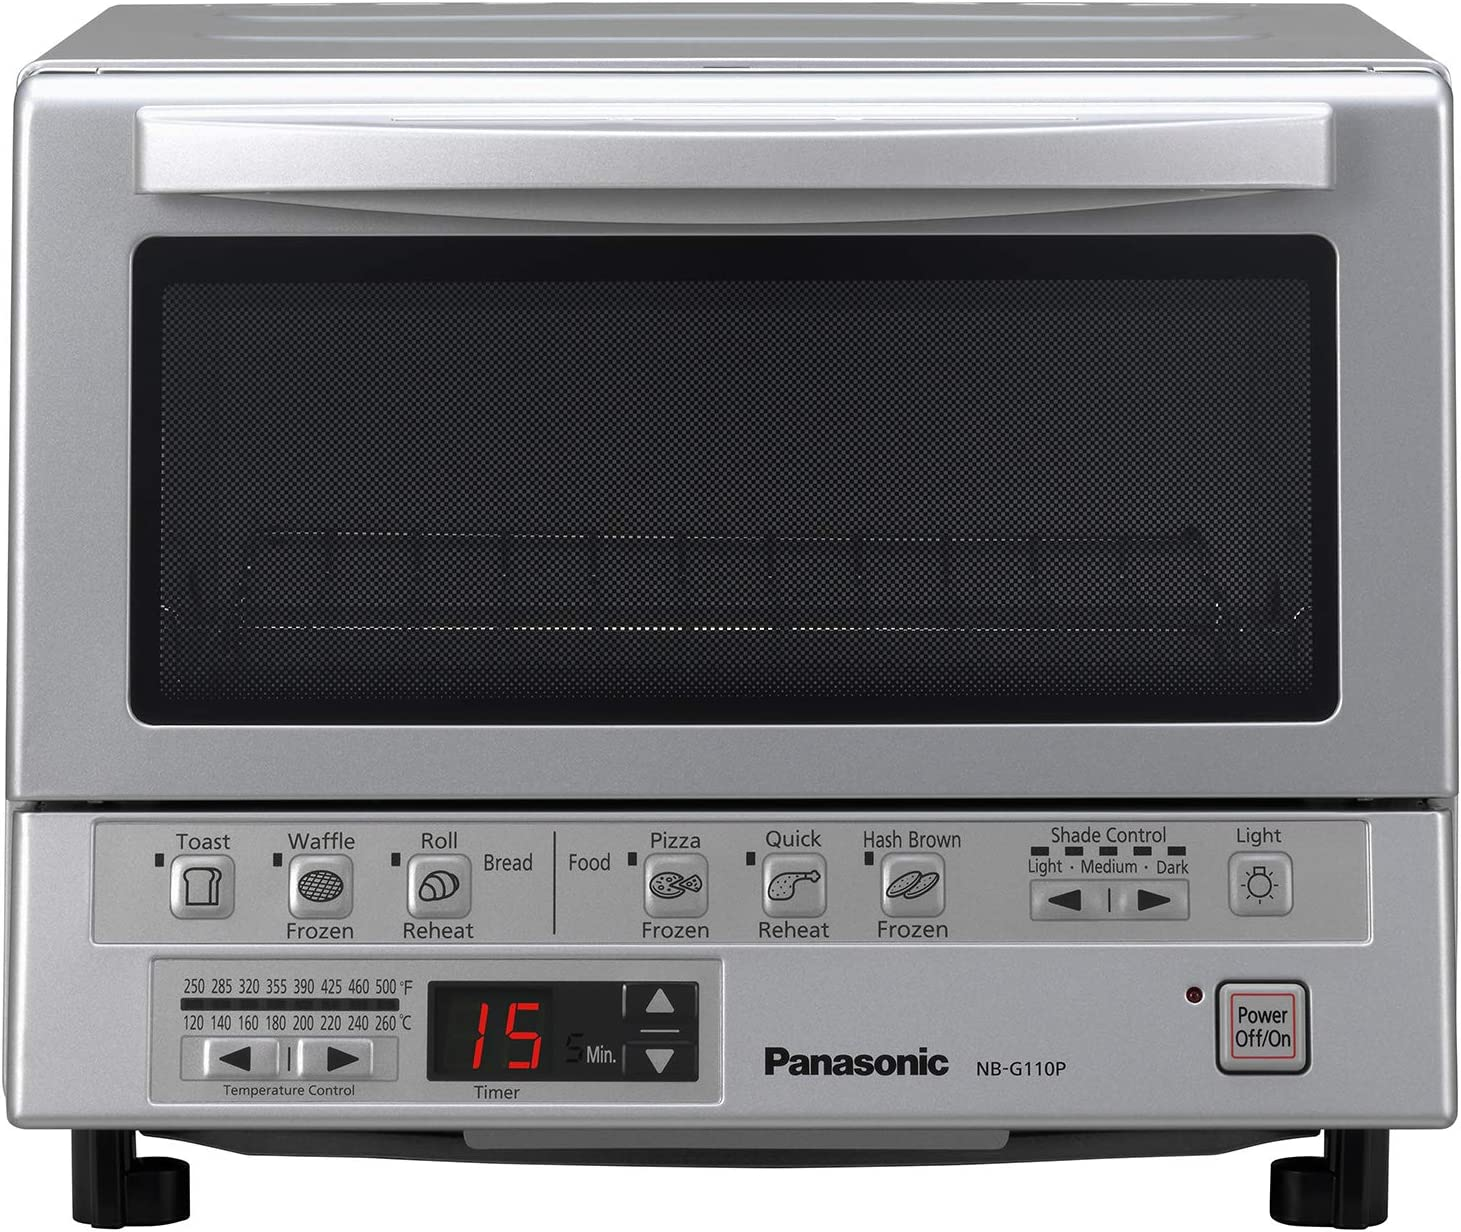 Panasonic NB-G110P FlashXpress Compact Toaster Oven